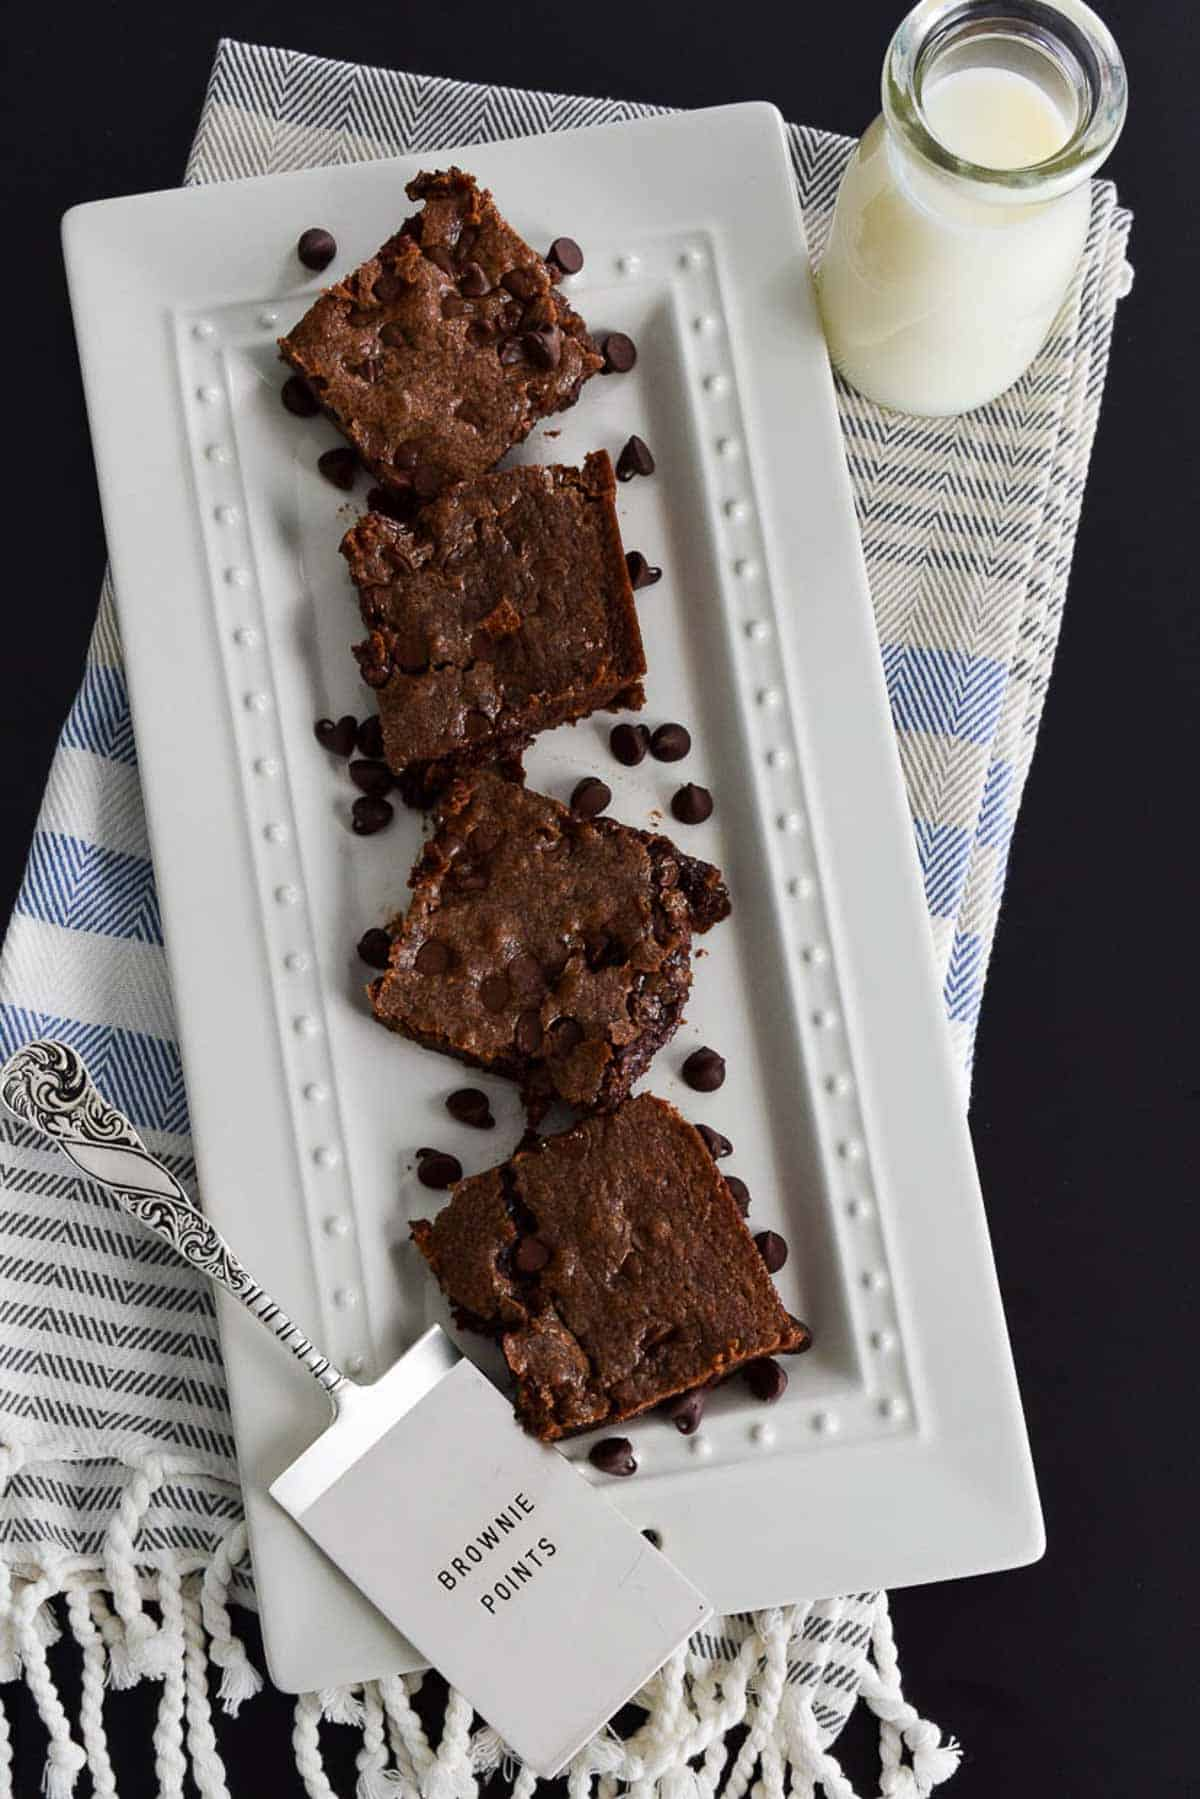 Brownies on white platter on top of striped kitchen towel next to glass of milk overhead shot